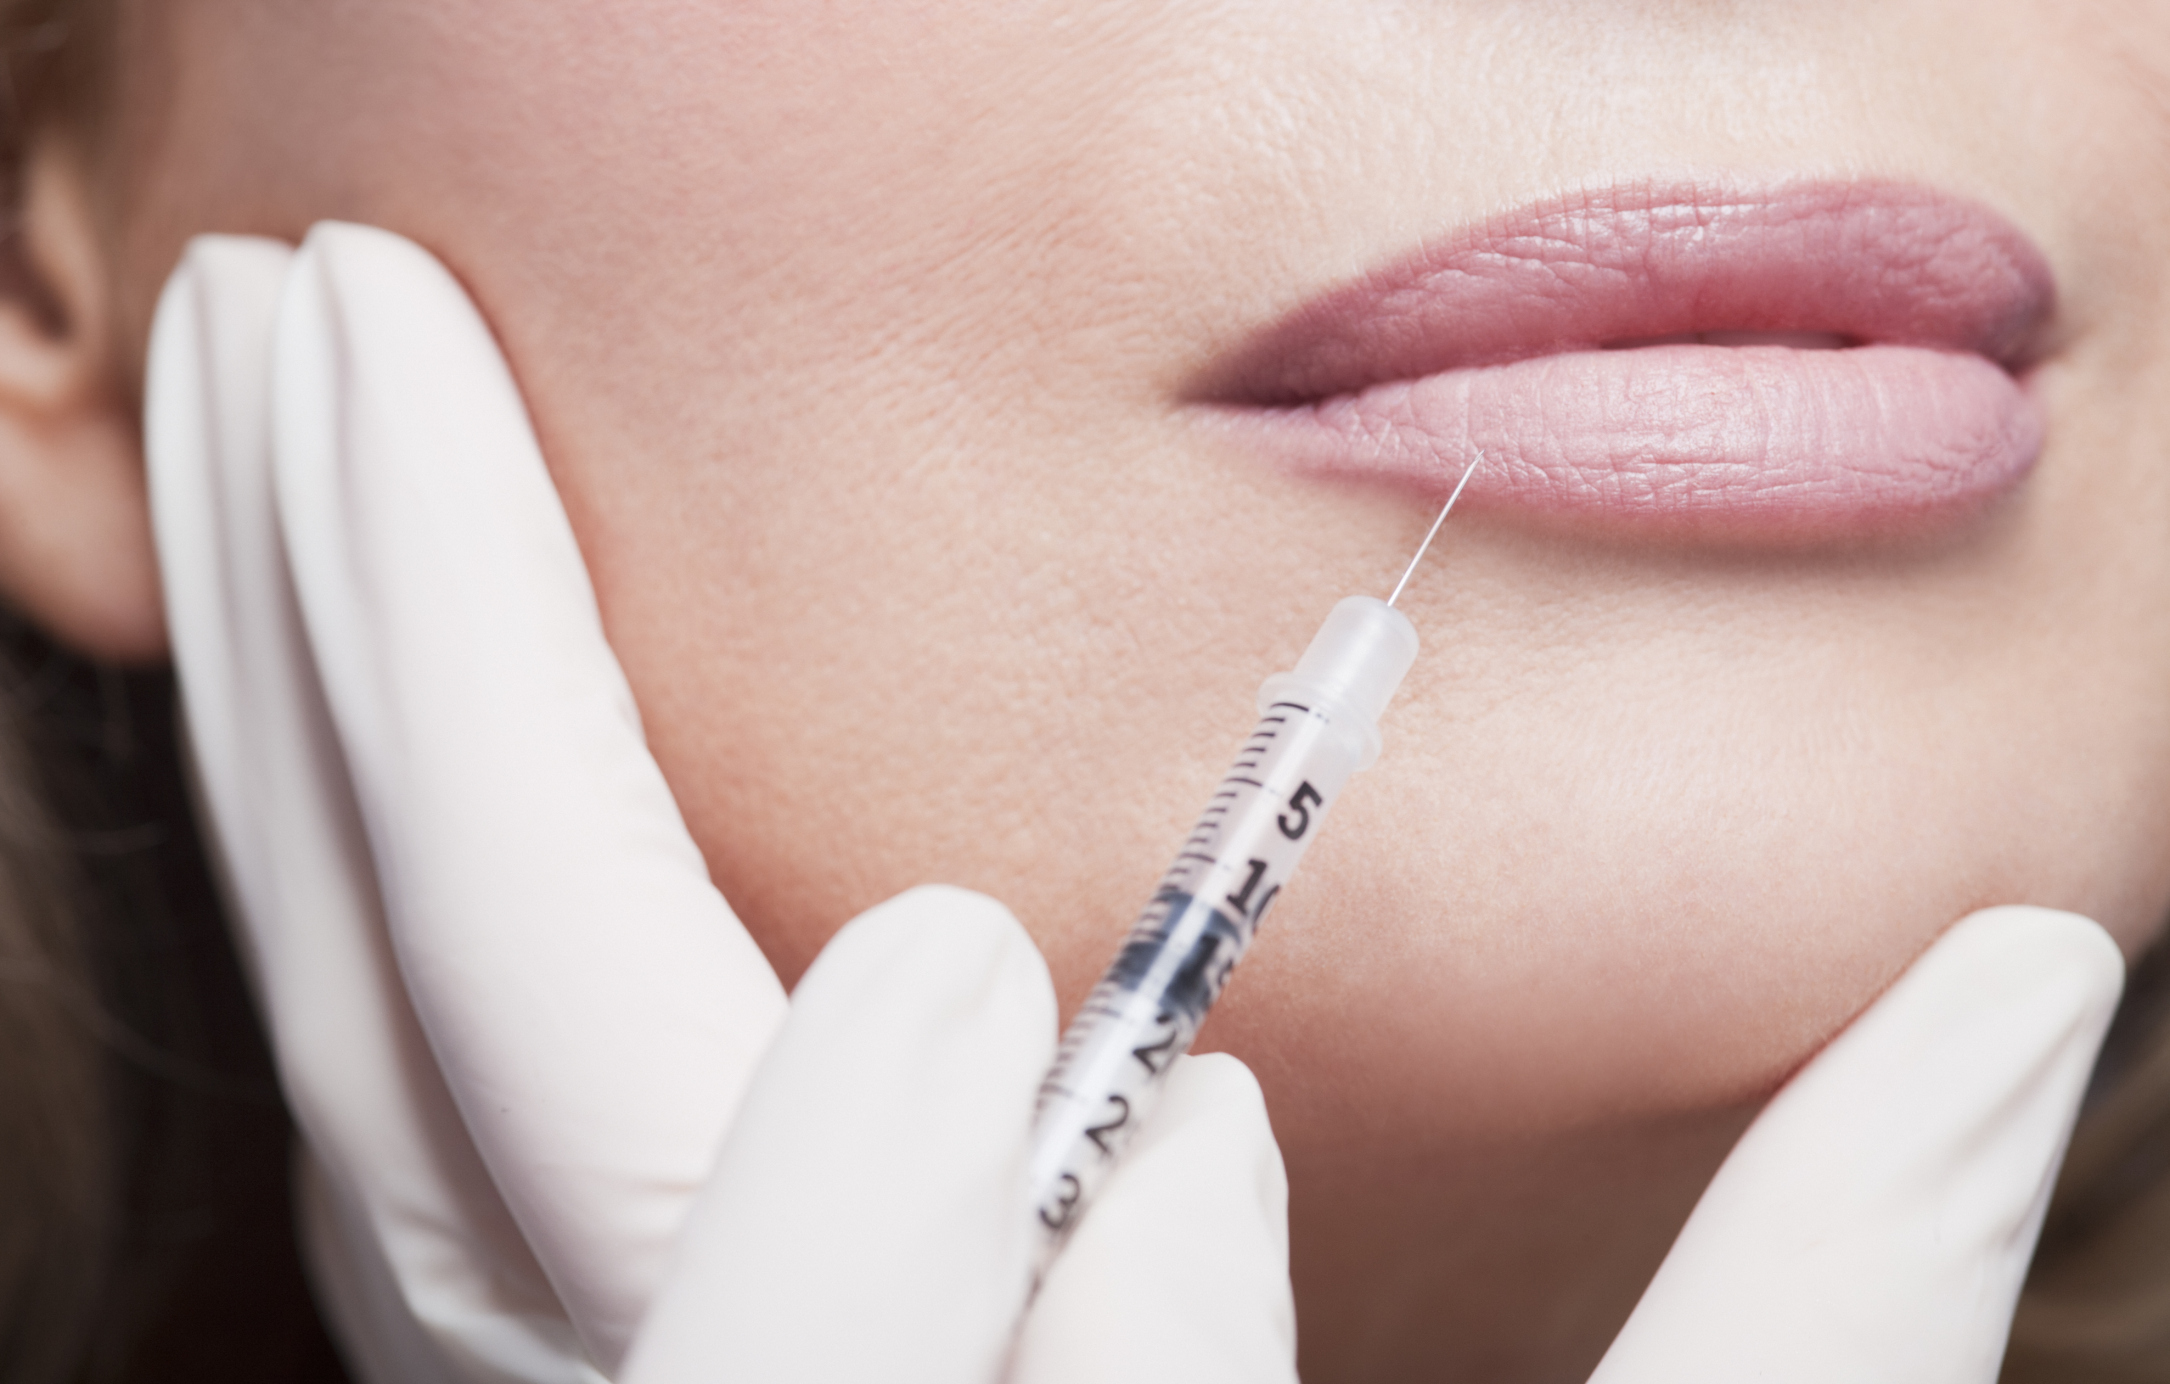 How to Treat Hematoma & Swelling After Botox